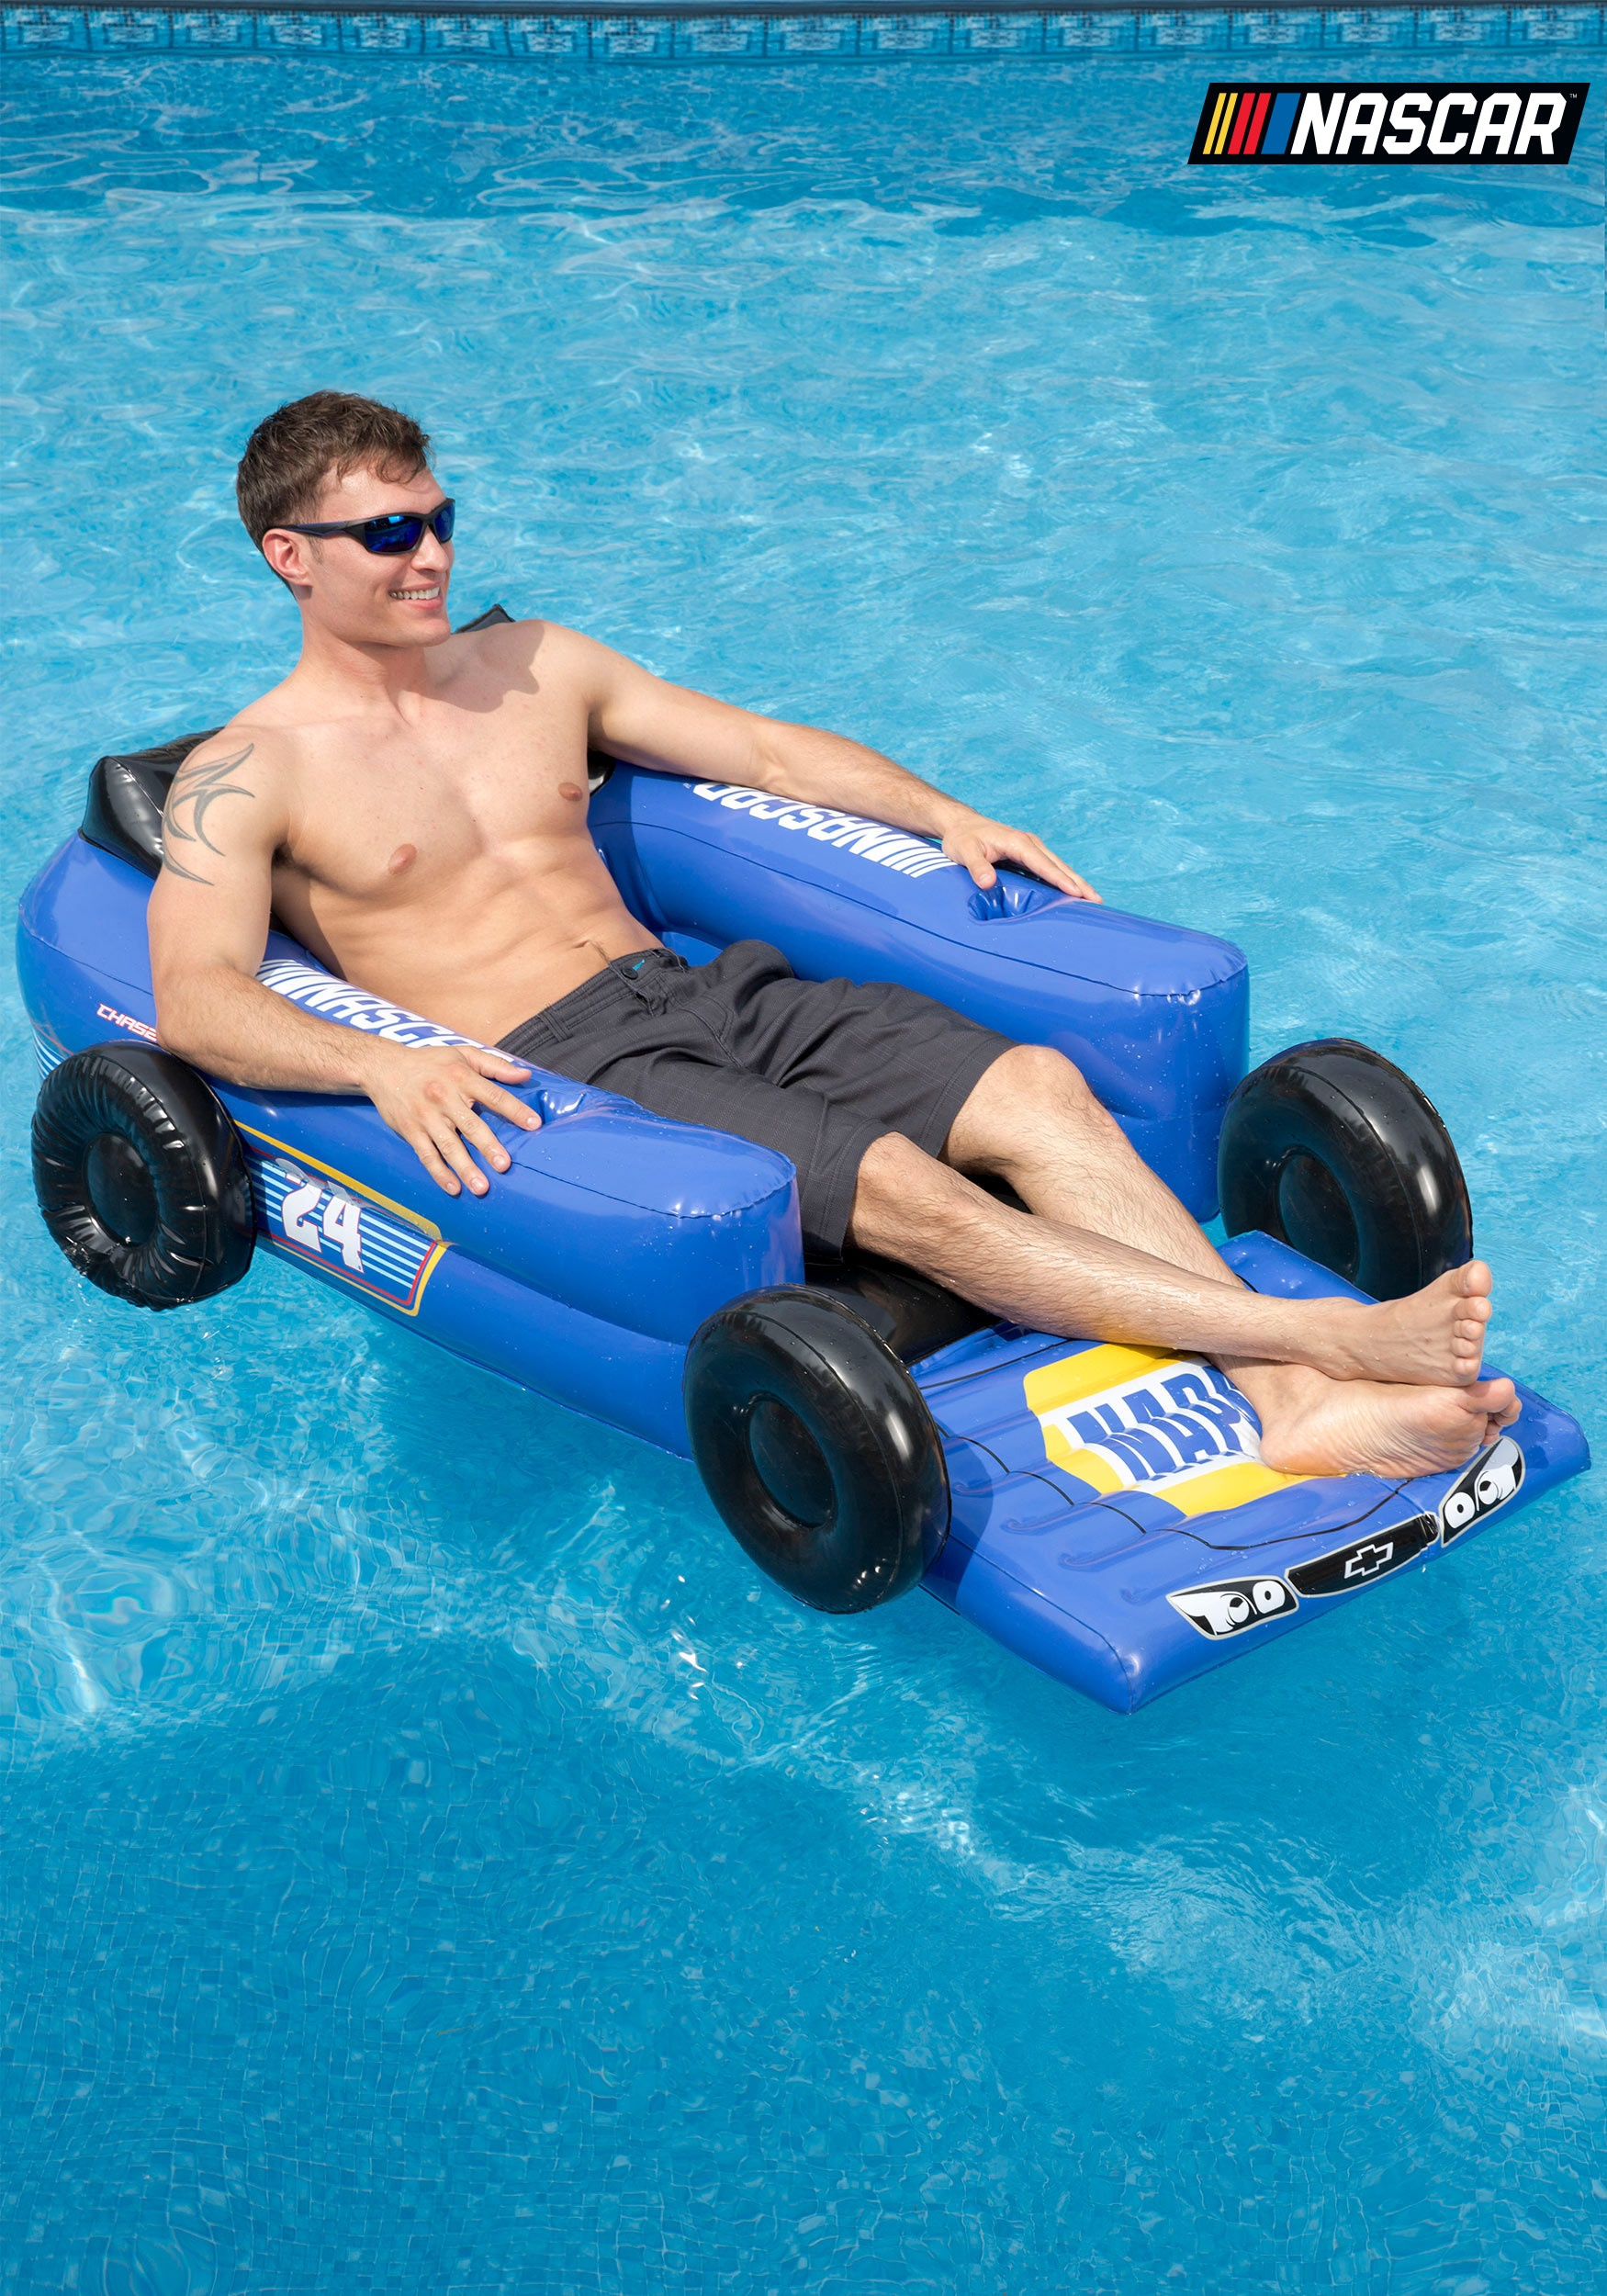 game of thrones chair for sale sex chase elliott nascar pool lounger